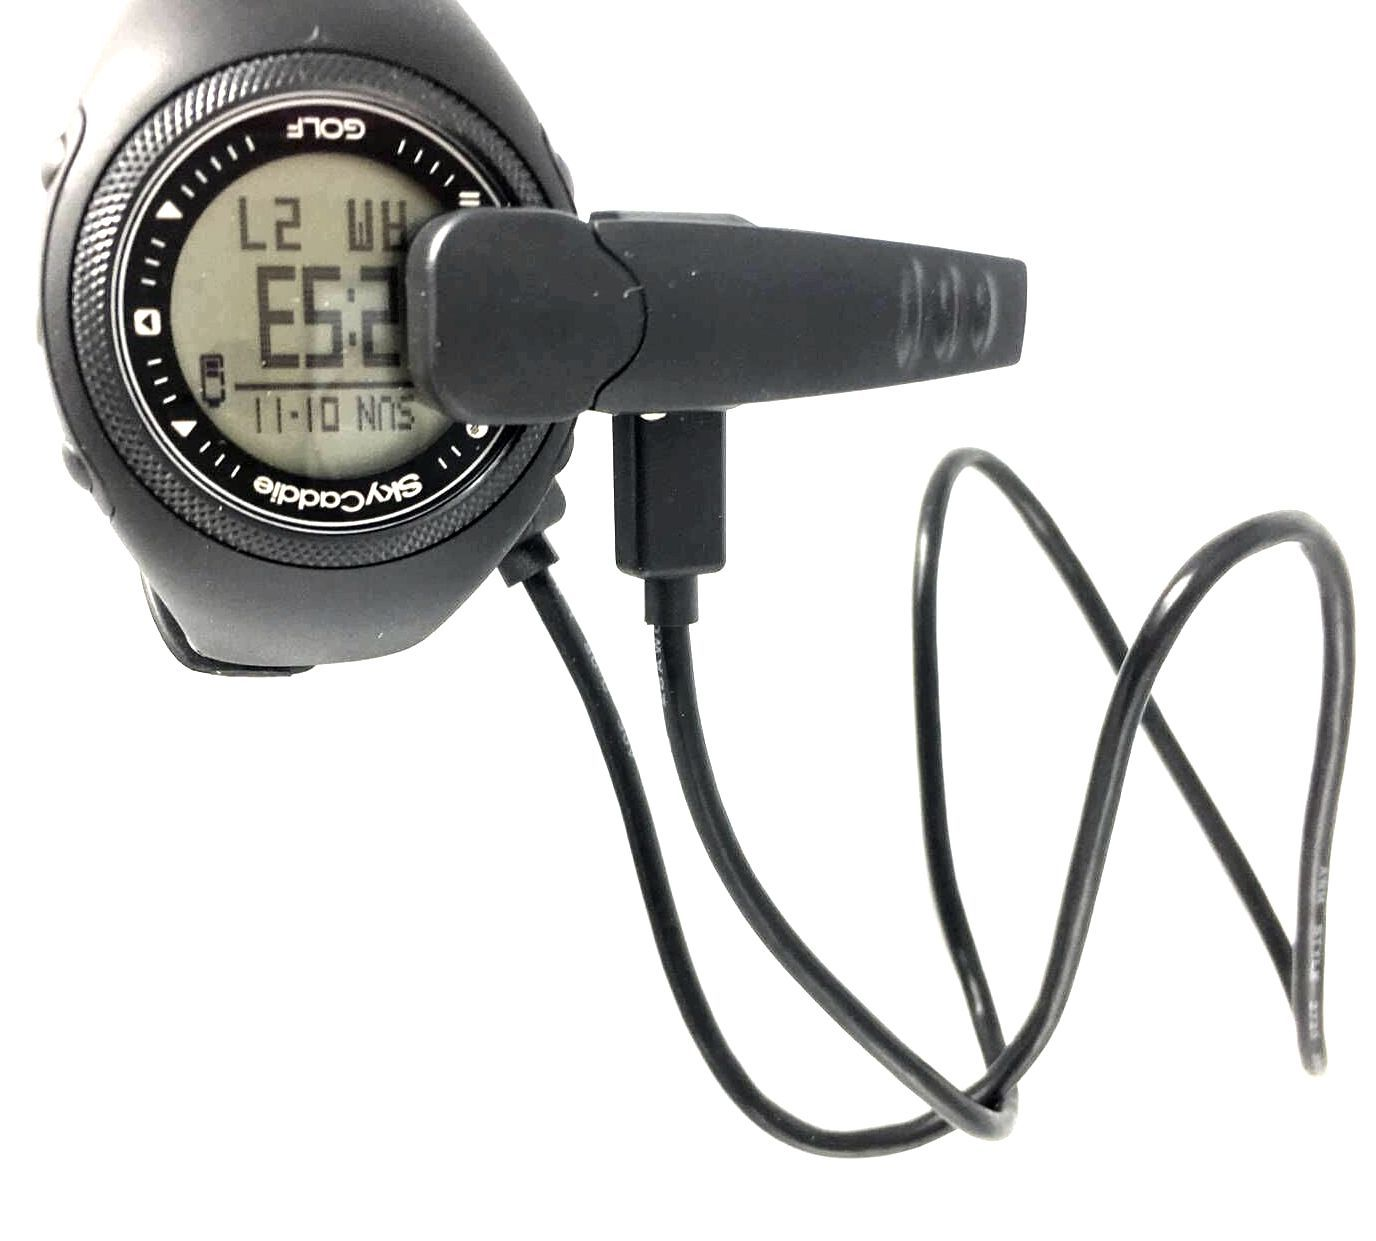 OEM GOLF GPS watch clip charging cable